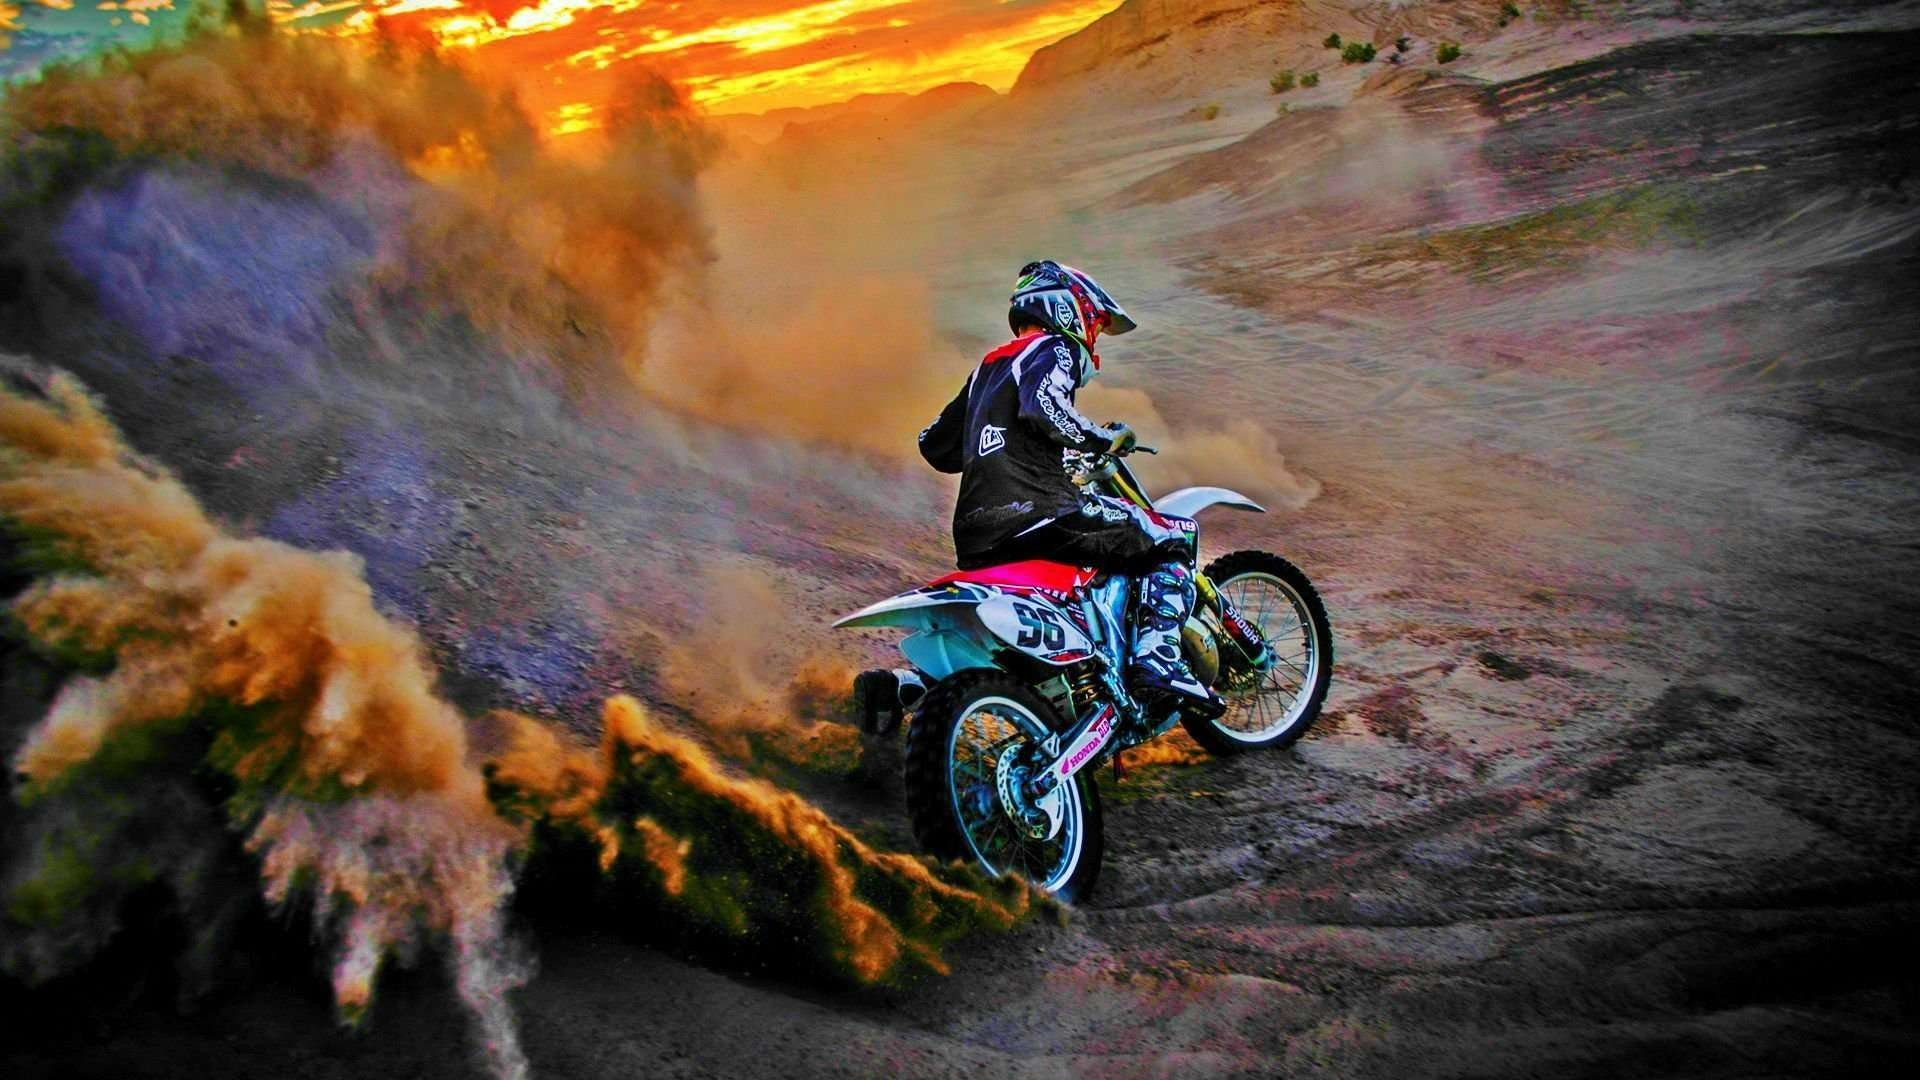 Fox Dirt Bike Wallpapers Top Free Fox Dirt Bike